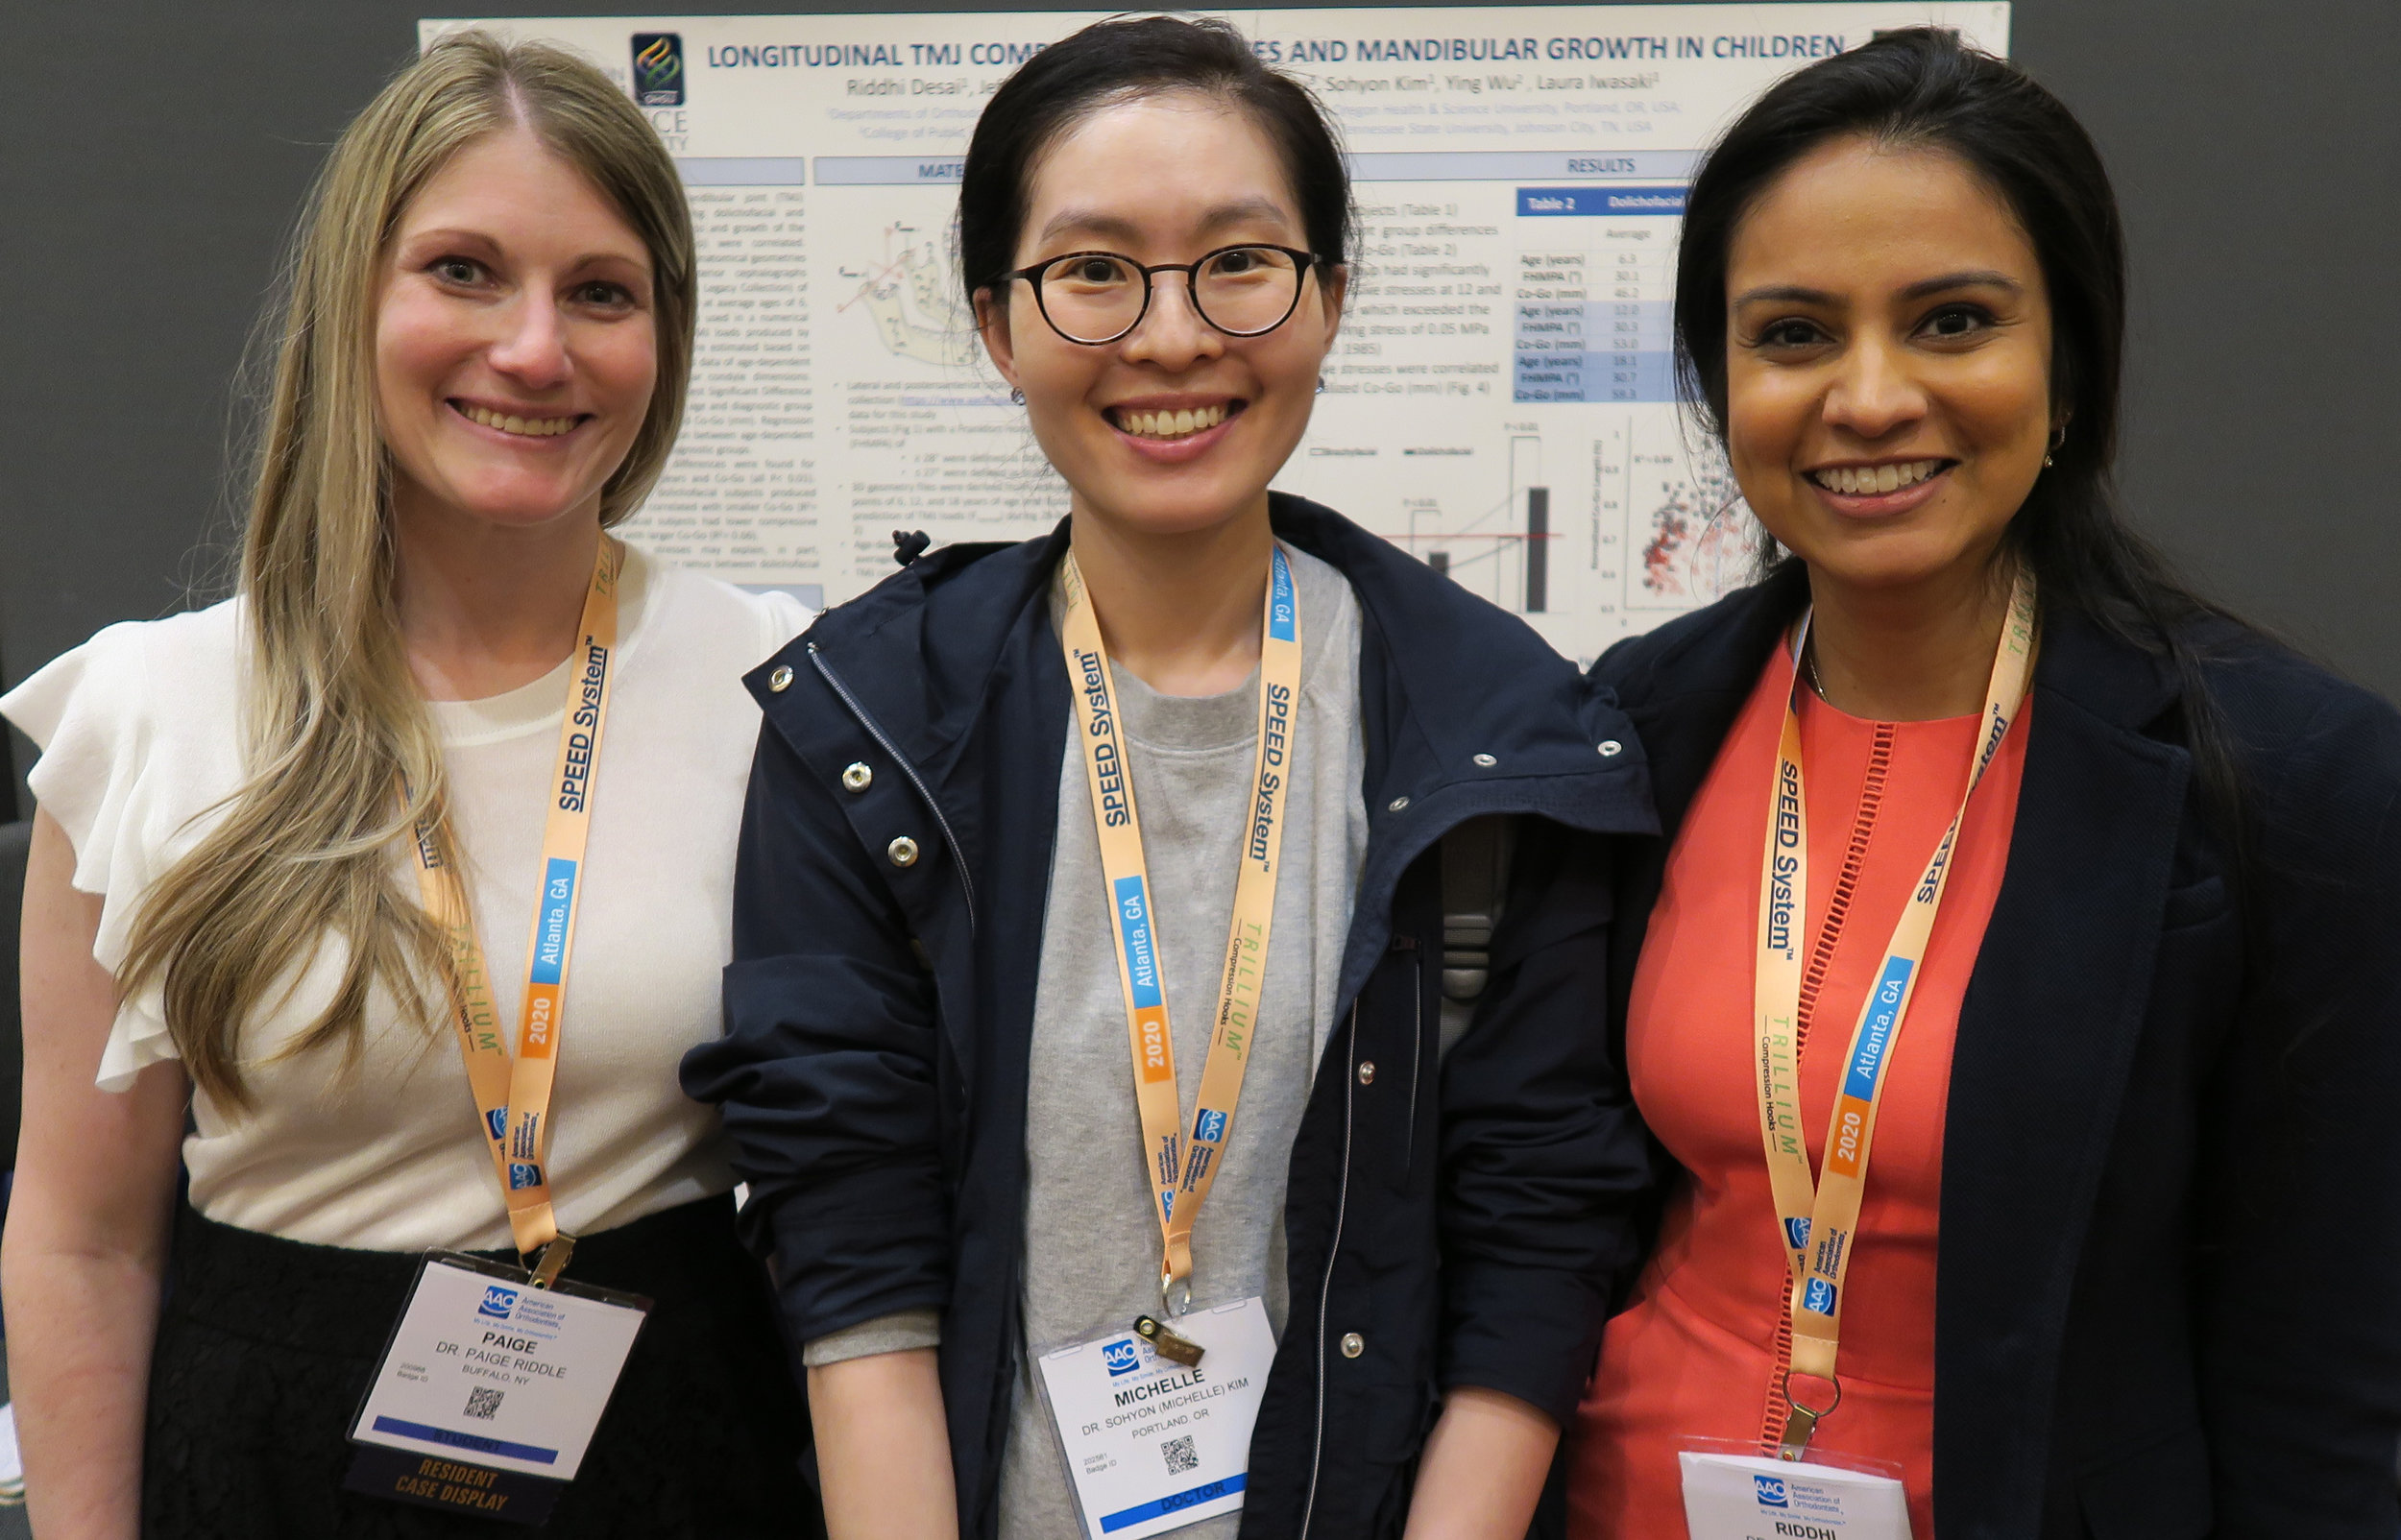 Pictured: Paige Riddle Covington (U Buffalo), Michelle Kim (OHSU), Riddhi Desai (OHSU)